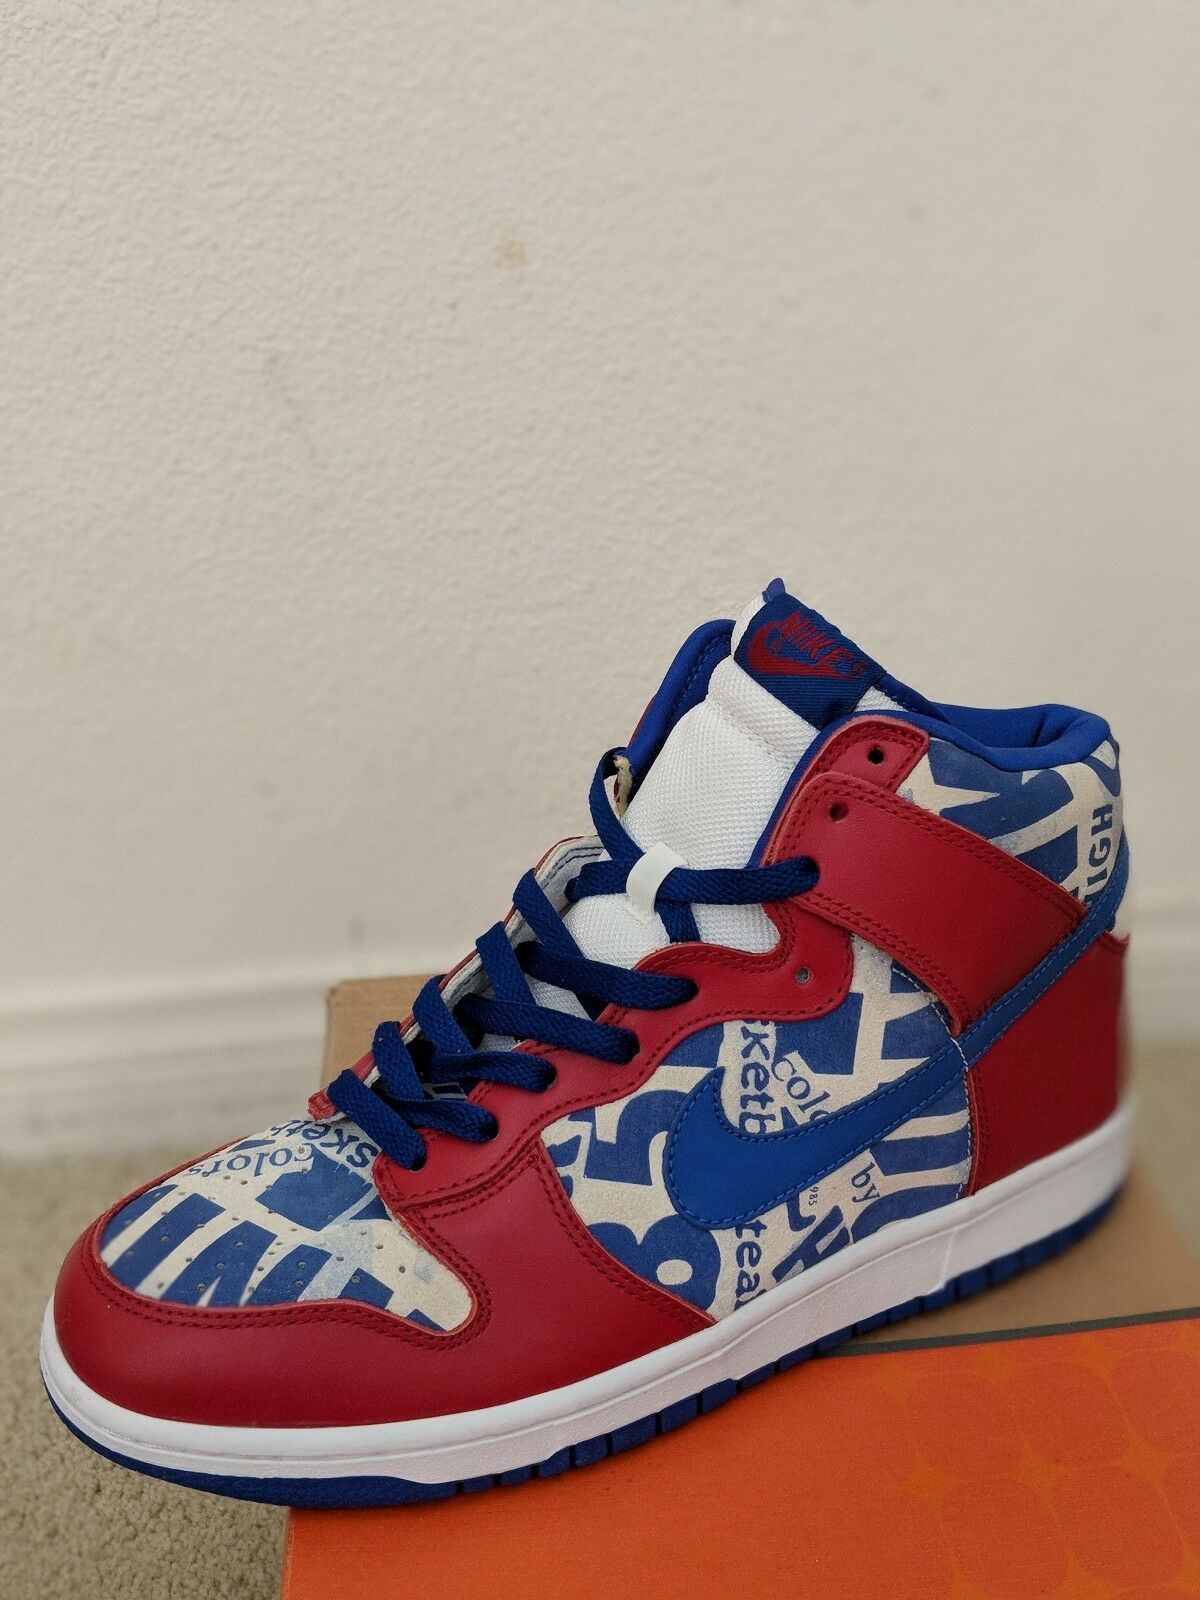 DS NIKE 2018 DUNK HI NEWSPAPER VARSITY RED 10 PRO SB SUPREME LUCKY New shoes for men and women, limited time discount